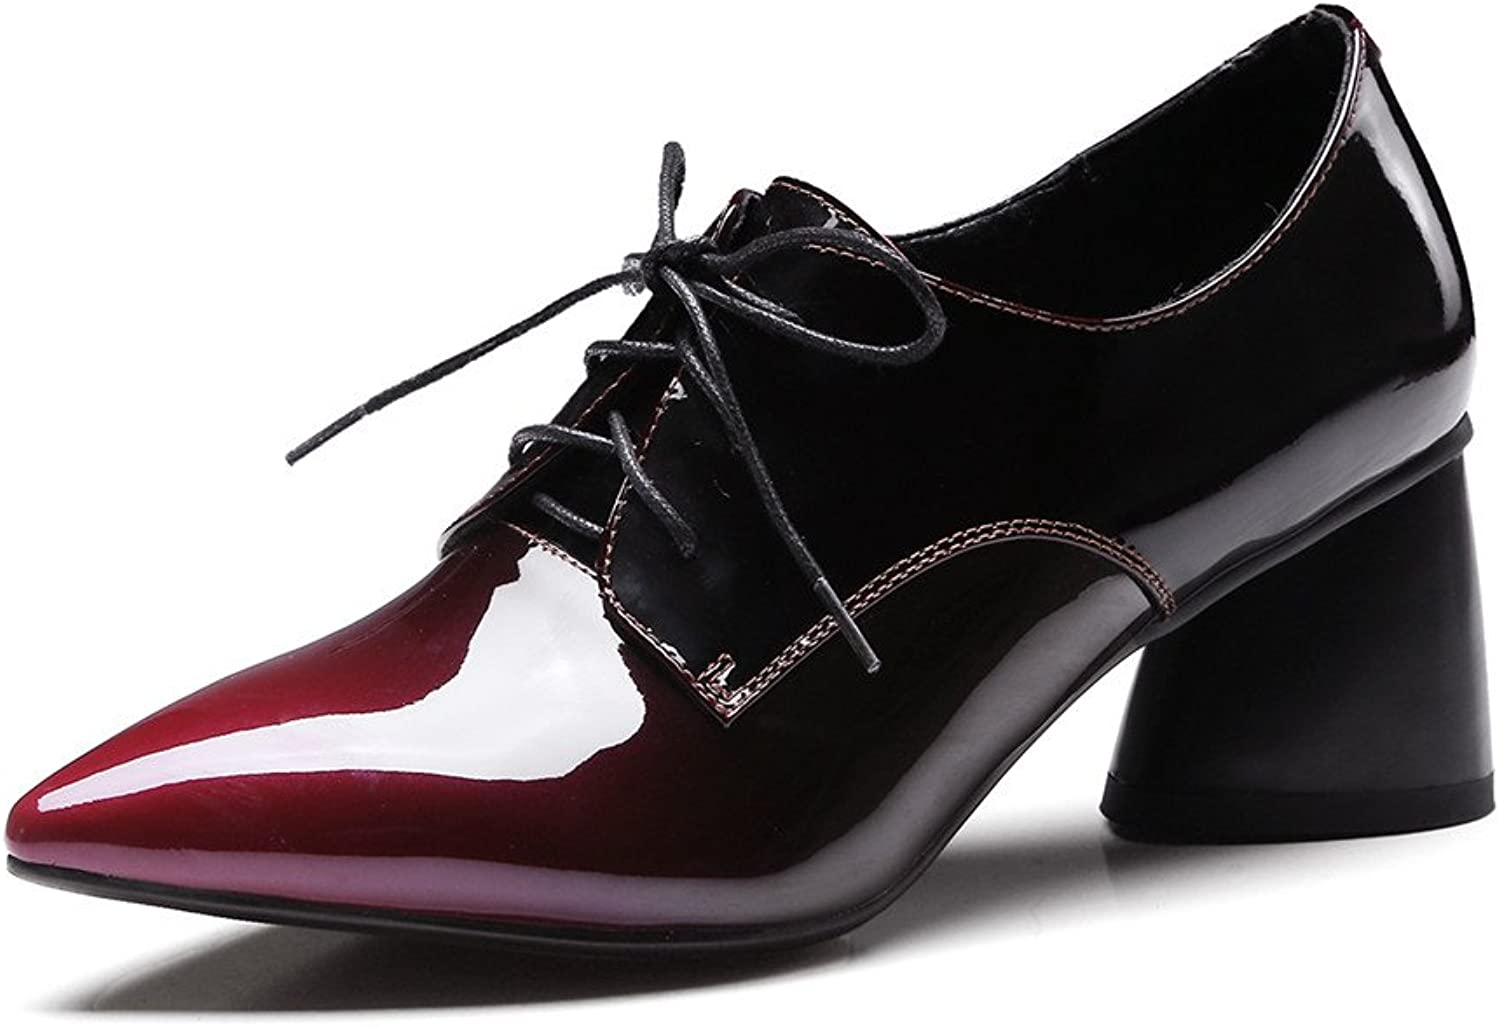 Nine Seven Patent Leather Women's Pointed Toe Chunky Heel Lace Up Handmade Cute Dress Pumps shoes